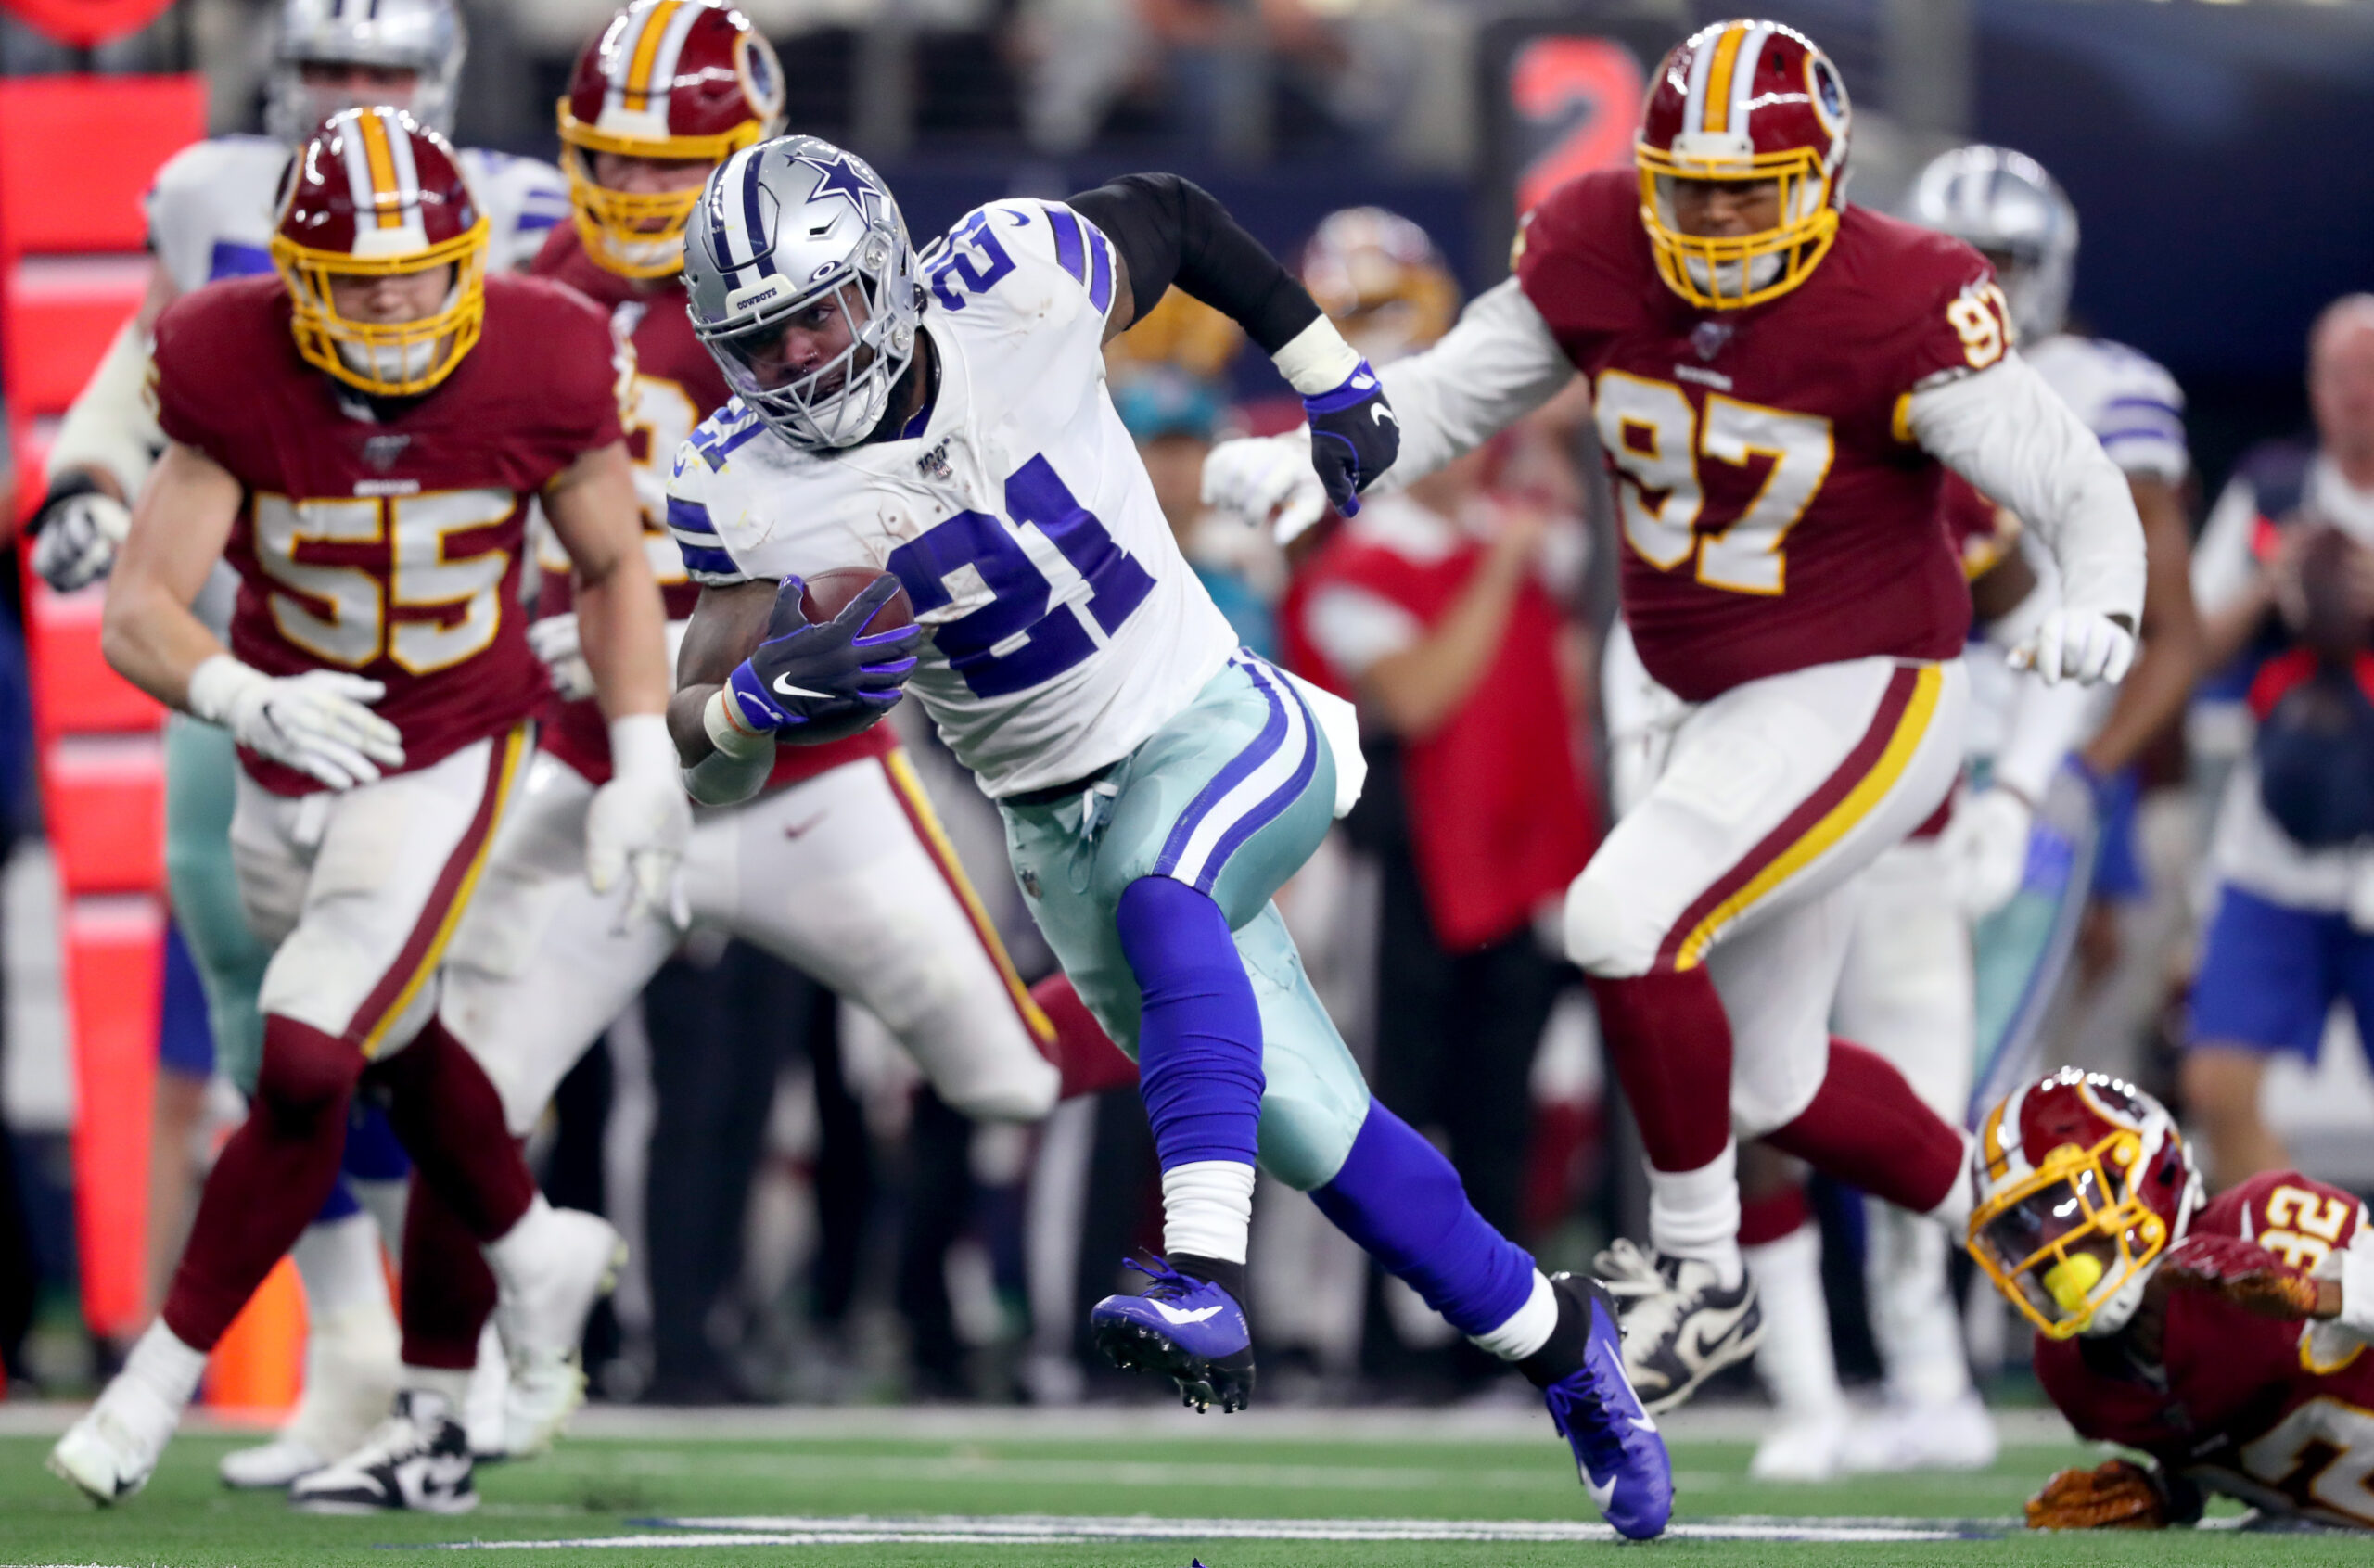 Cowboys lead Washington, 10-7, in first quarter